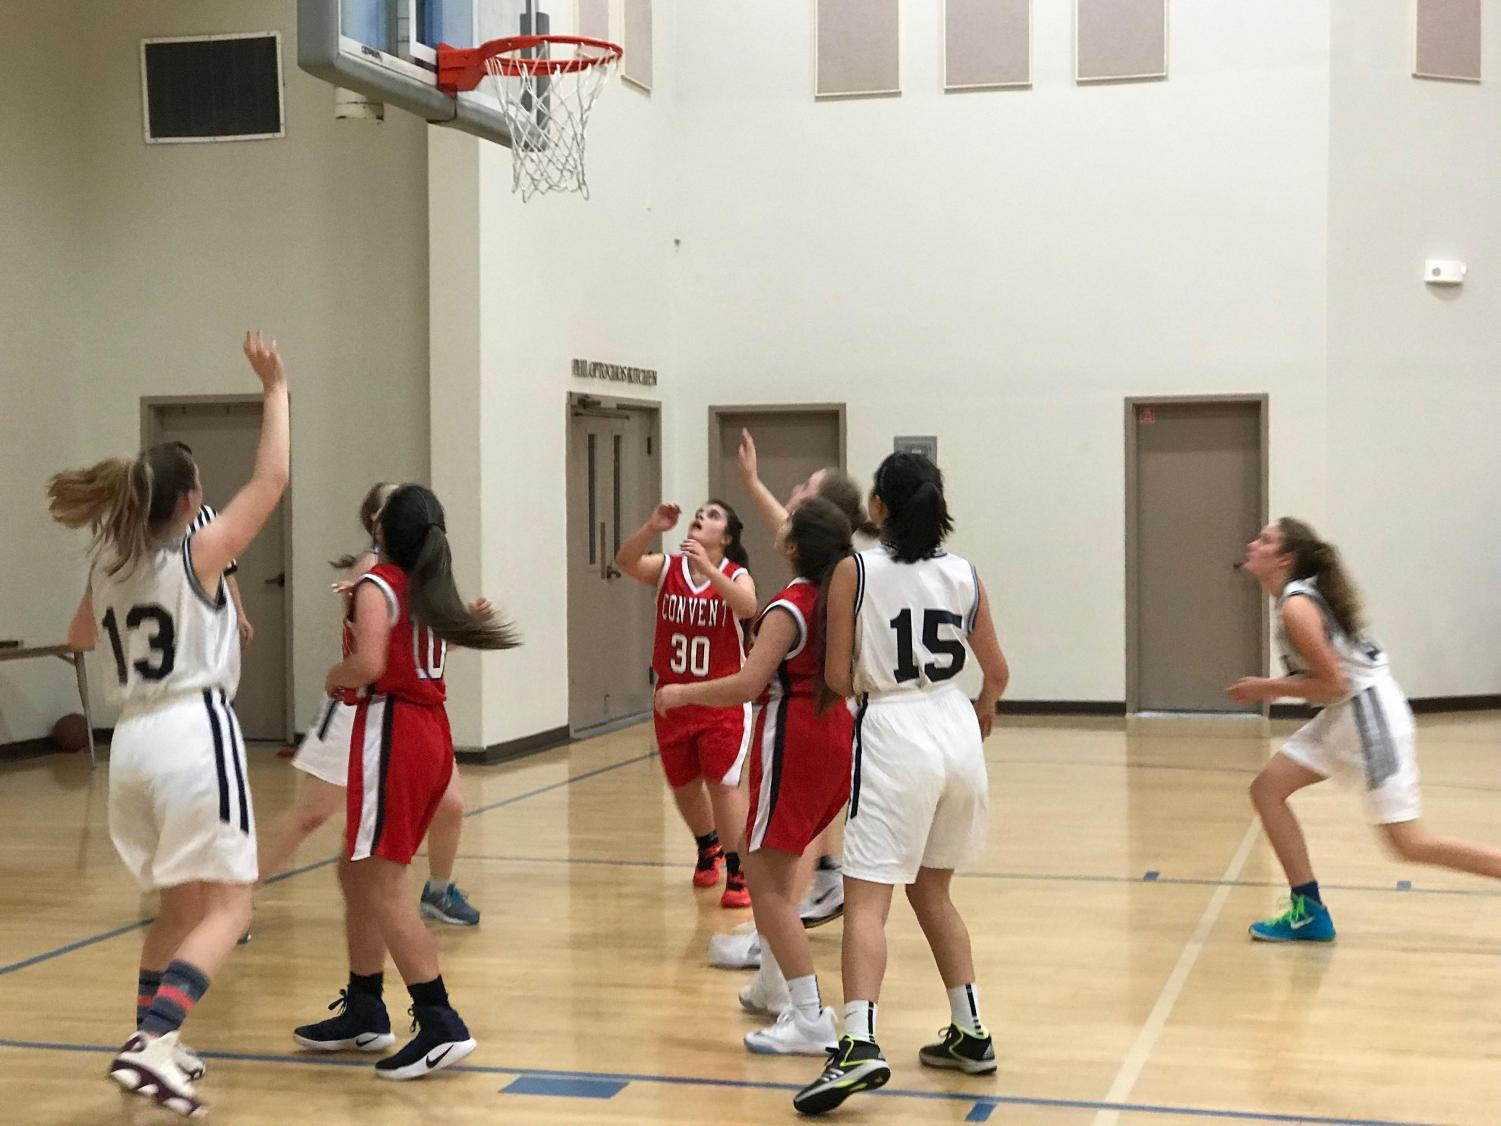 The JV basketball team defends Waldorf during the second quarter of the game. The quarter ended with Cubs up 8-6, but the game ended with a Convent loss of 23-15.